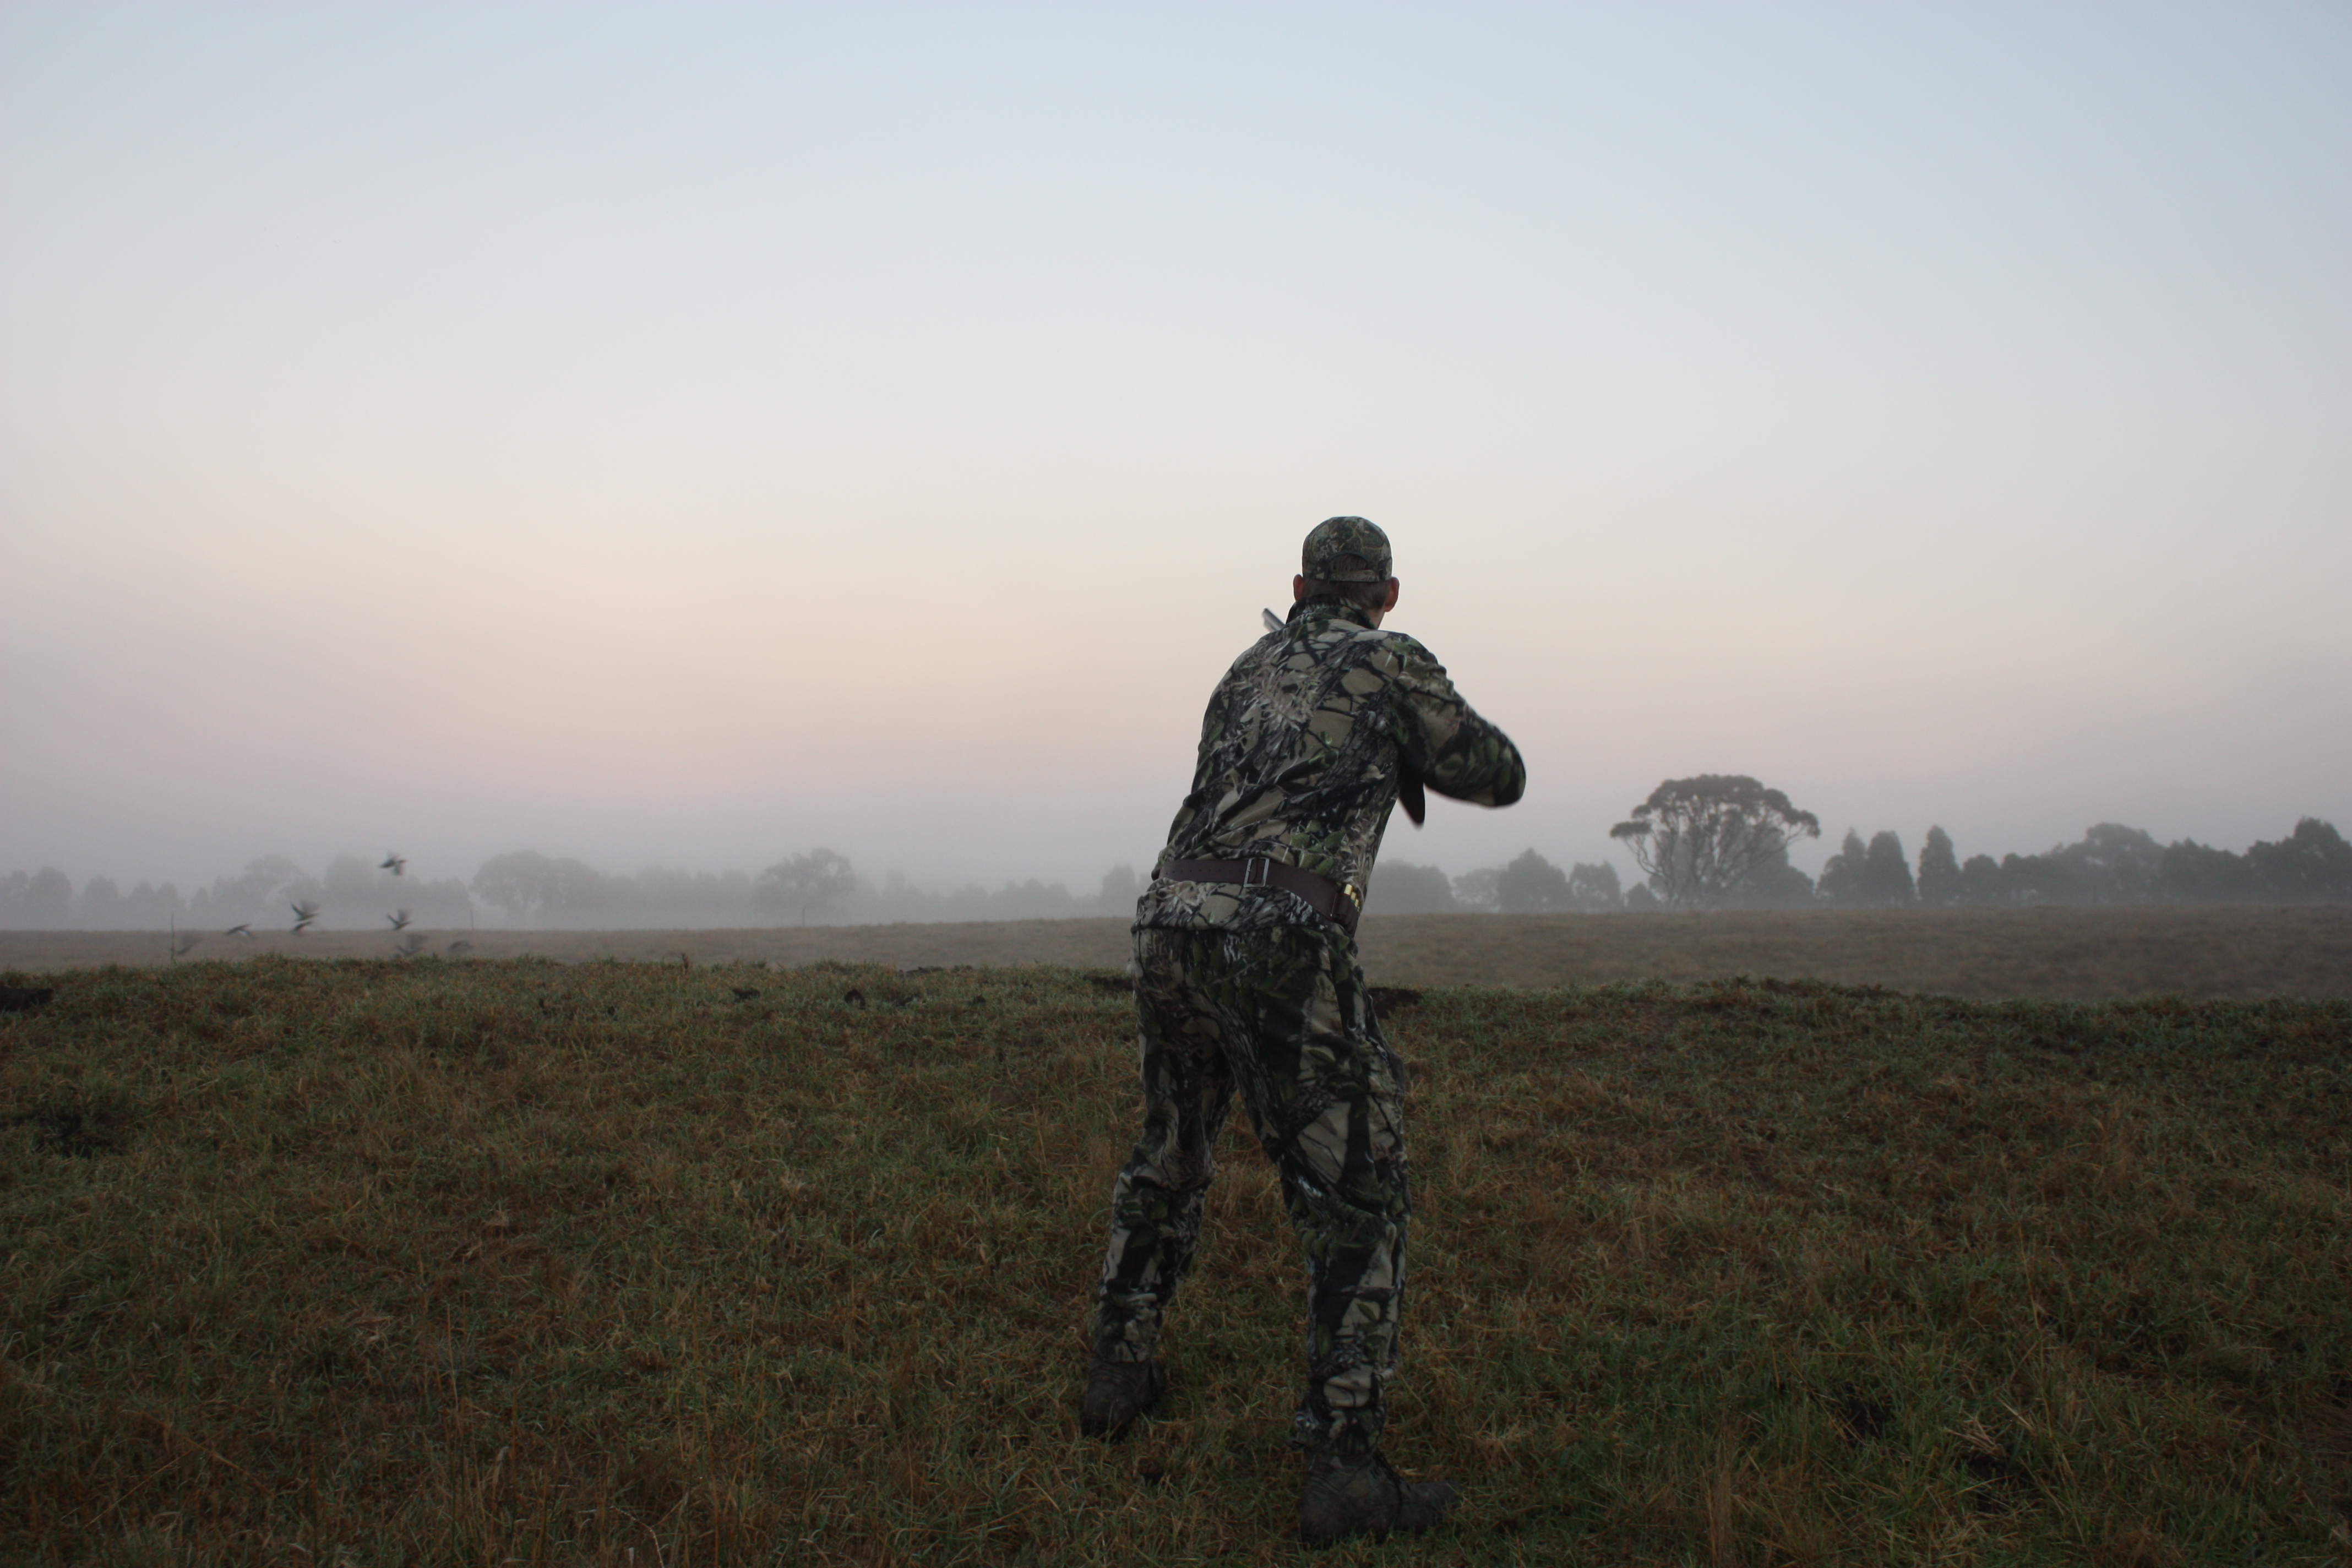 More Restrictions Placed on Duck Hunting in 2020